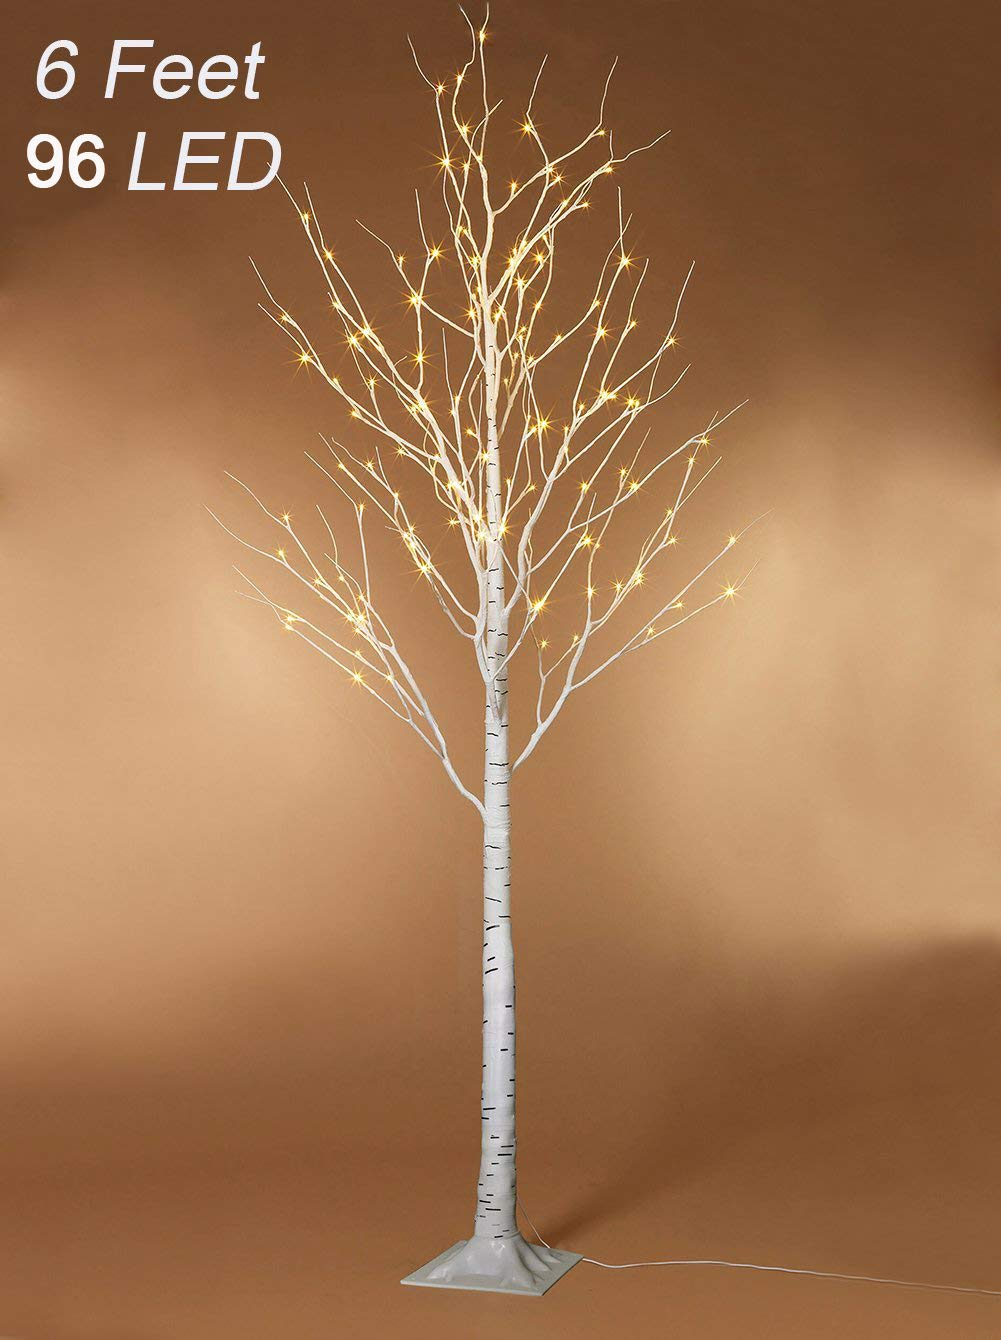 Twinkle Star Lighted Birch Tree 6 Feet 96 LED Home Wedding Festival Party Christmas Decoration (Birch Tree) by Twinkle Star